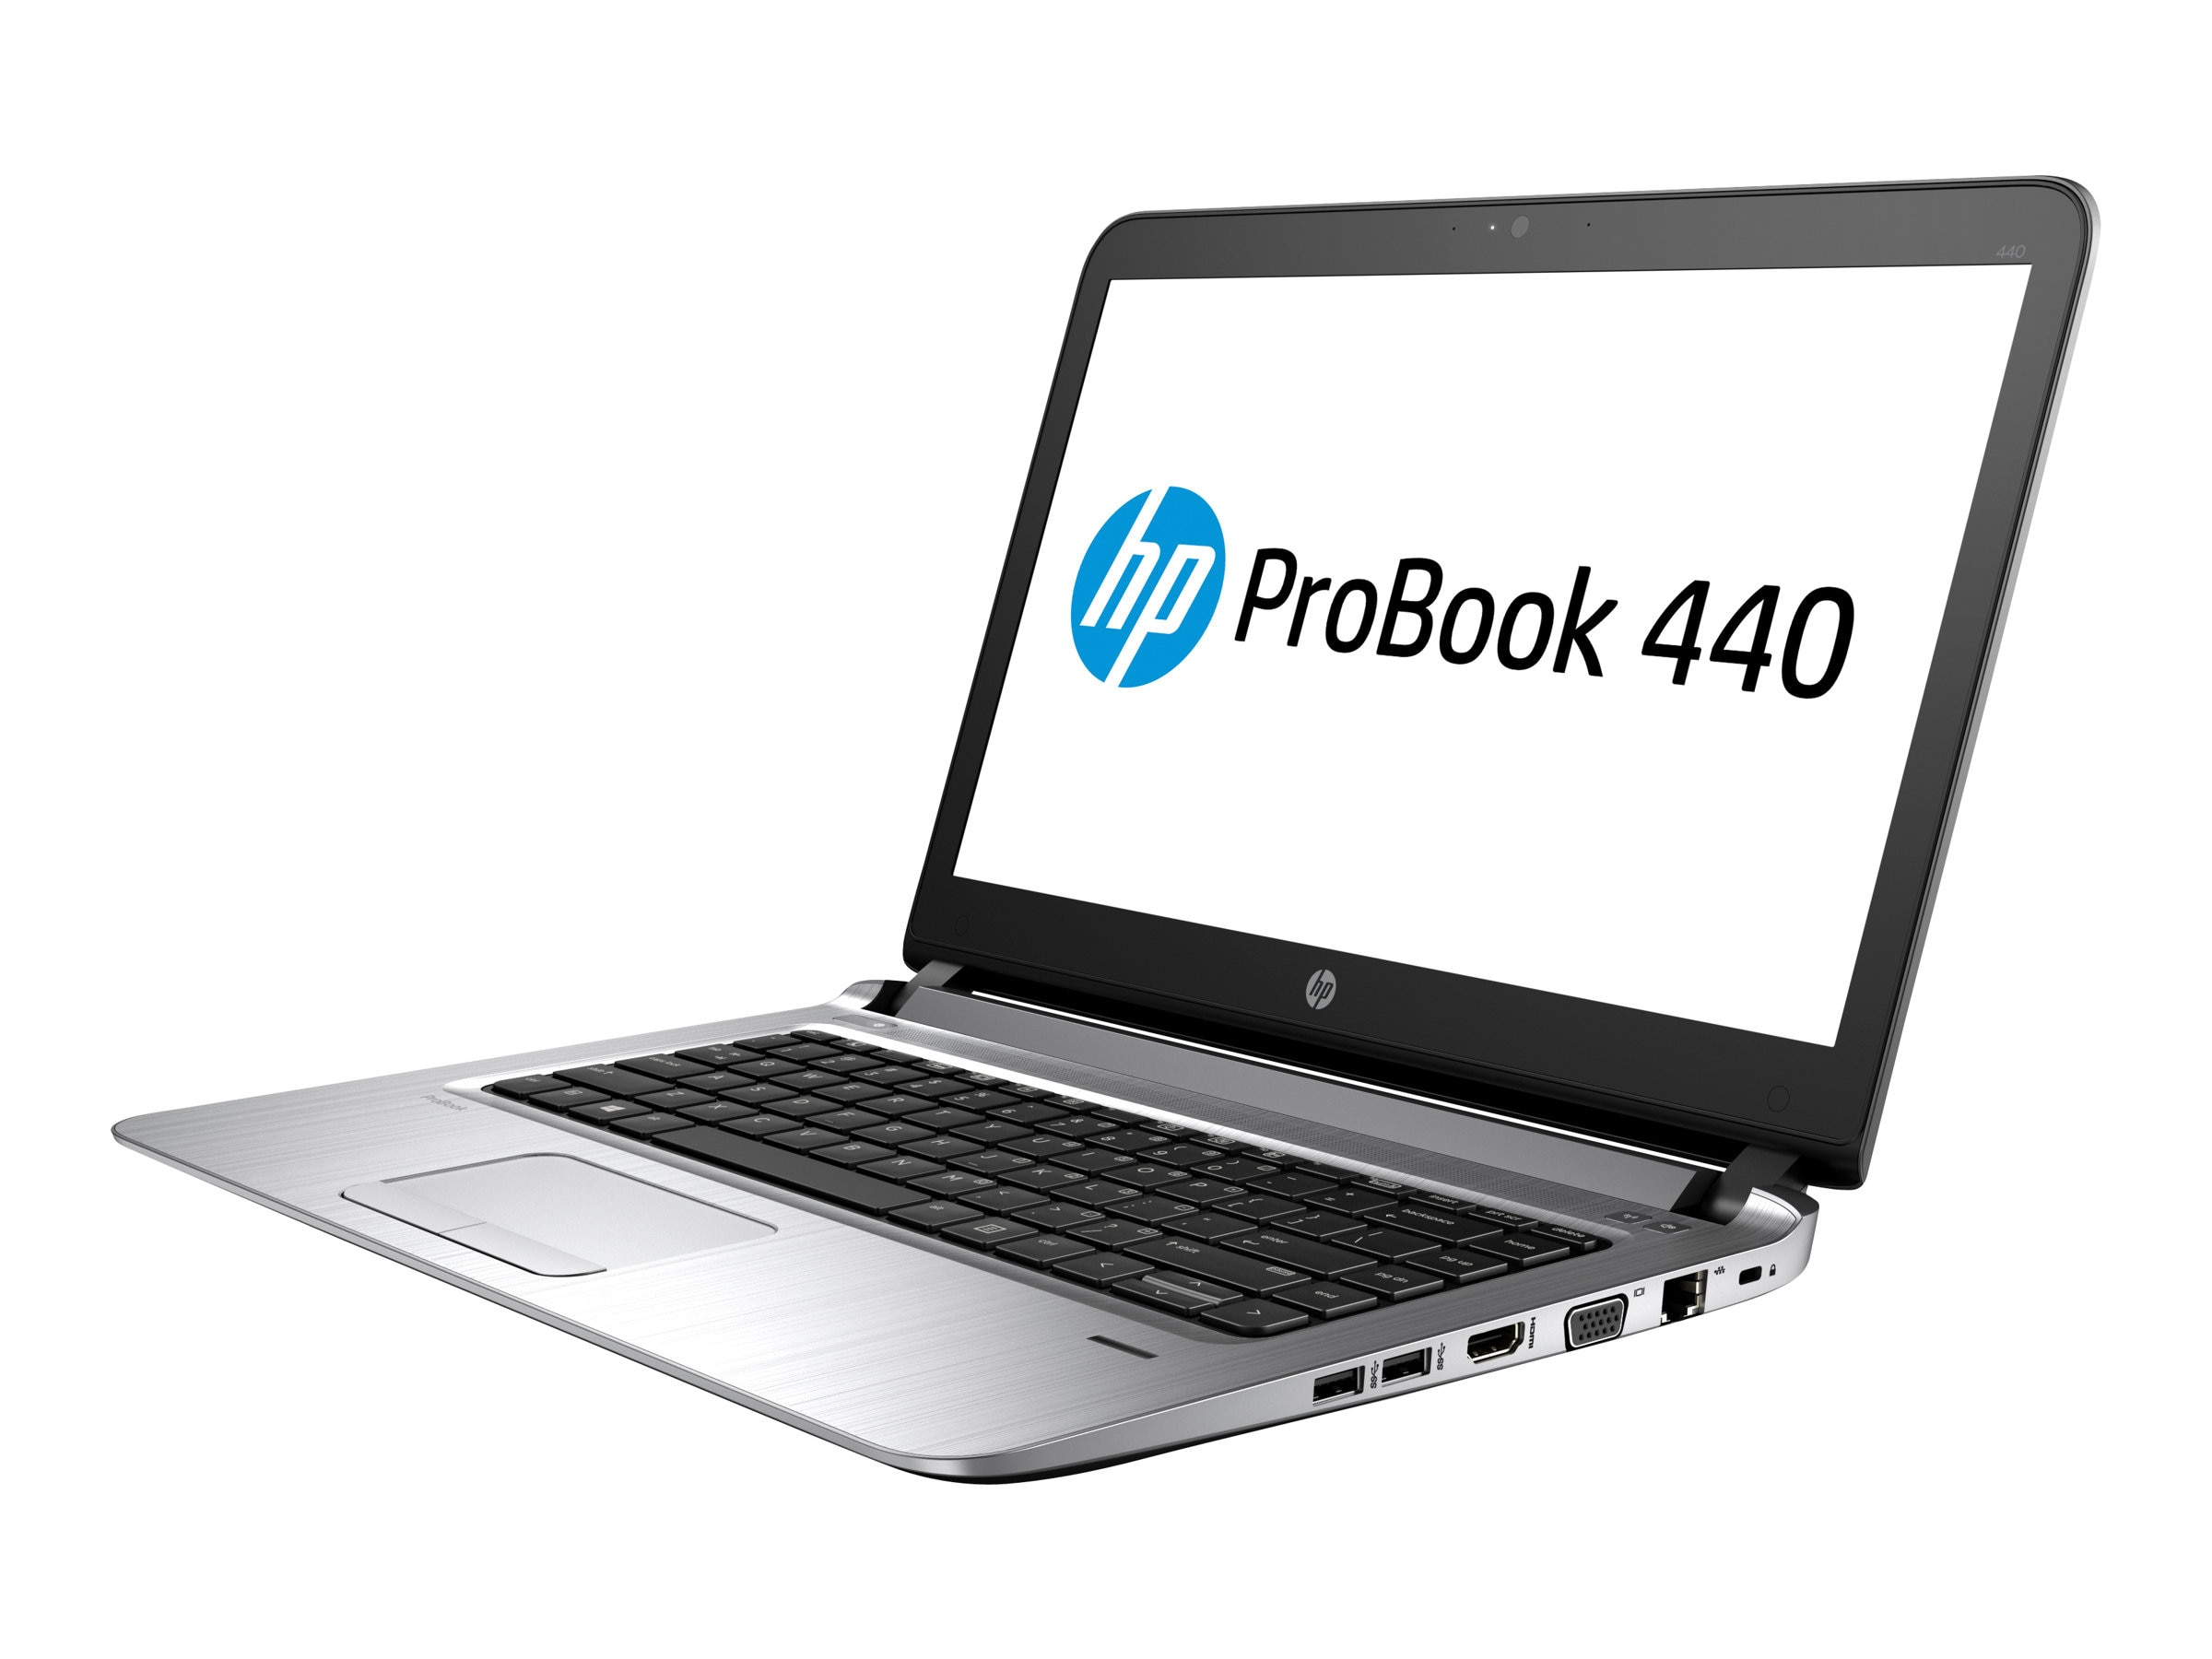 HP ProBook 440 G3 2.3GHz Core i5 14in display